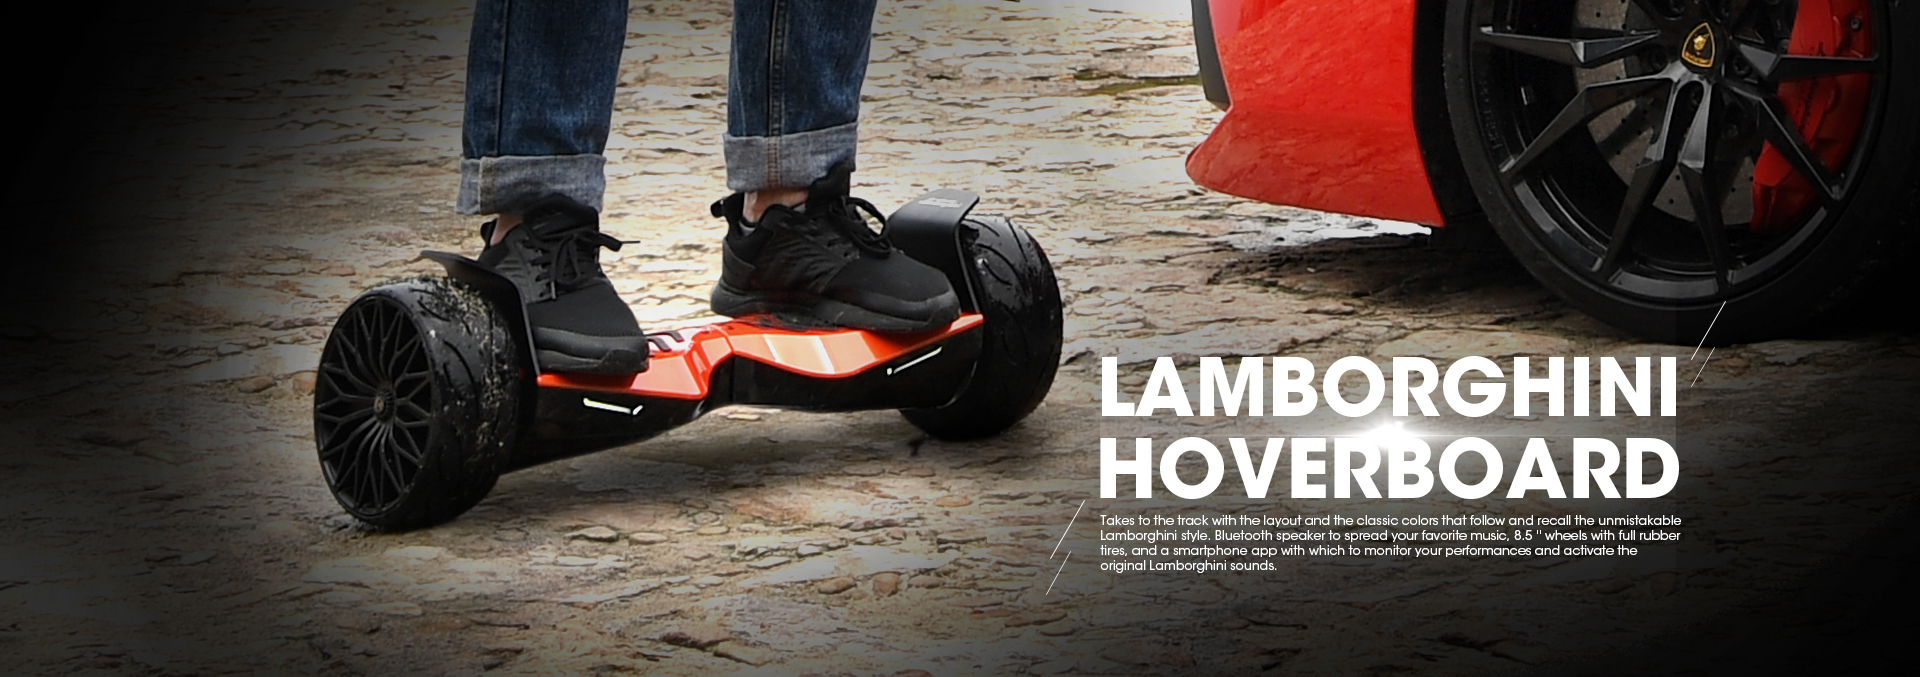 Best Christmas Gifts for Kids 2018 - Hottest Lamborghini Hoverboard Suggestion